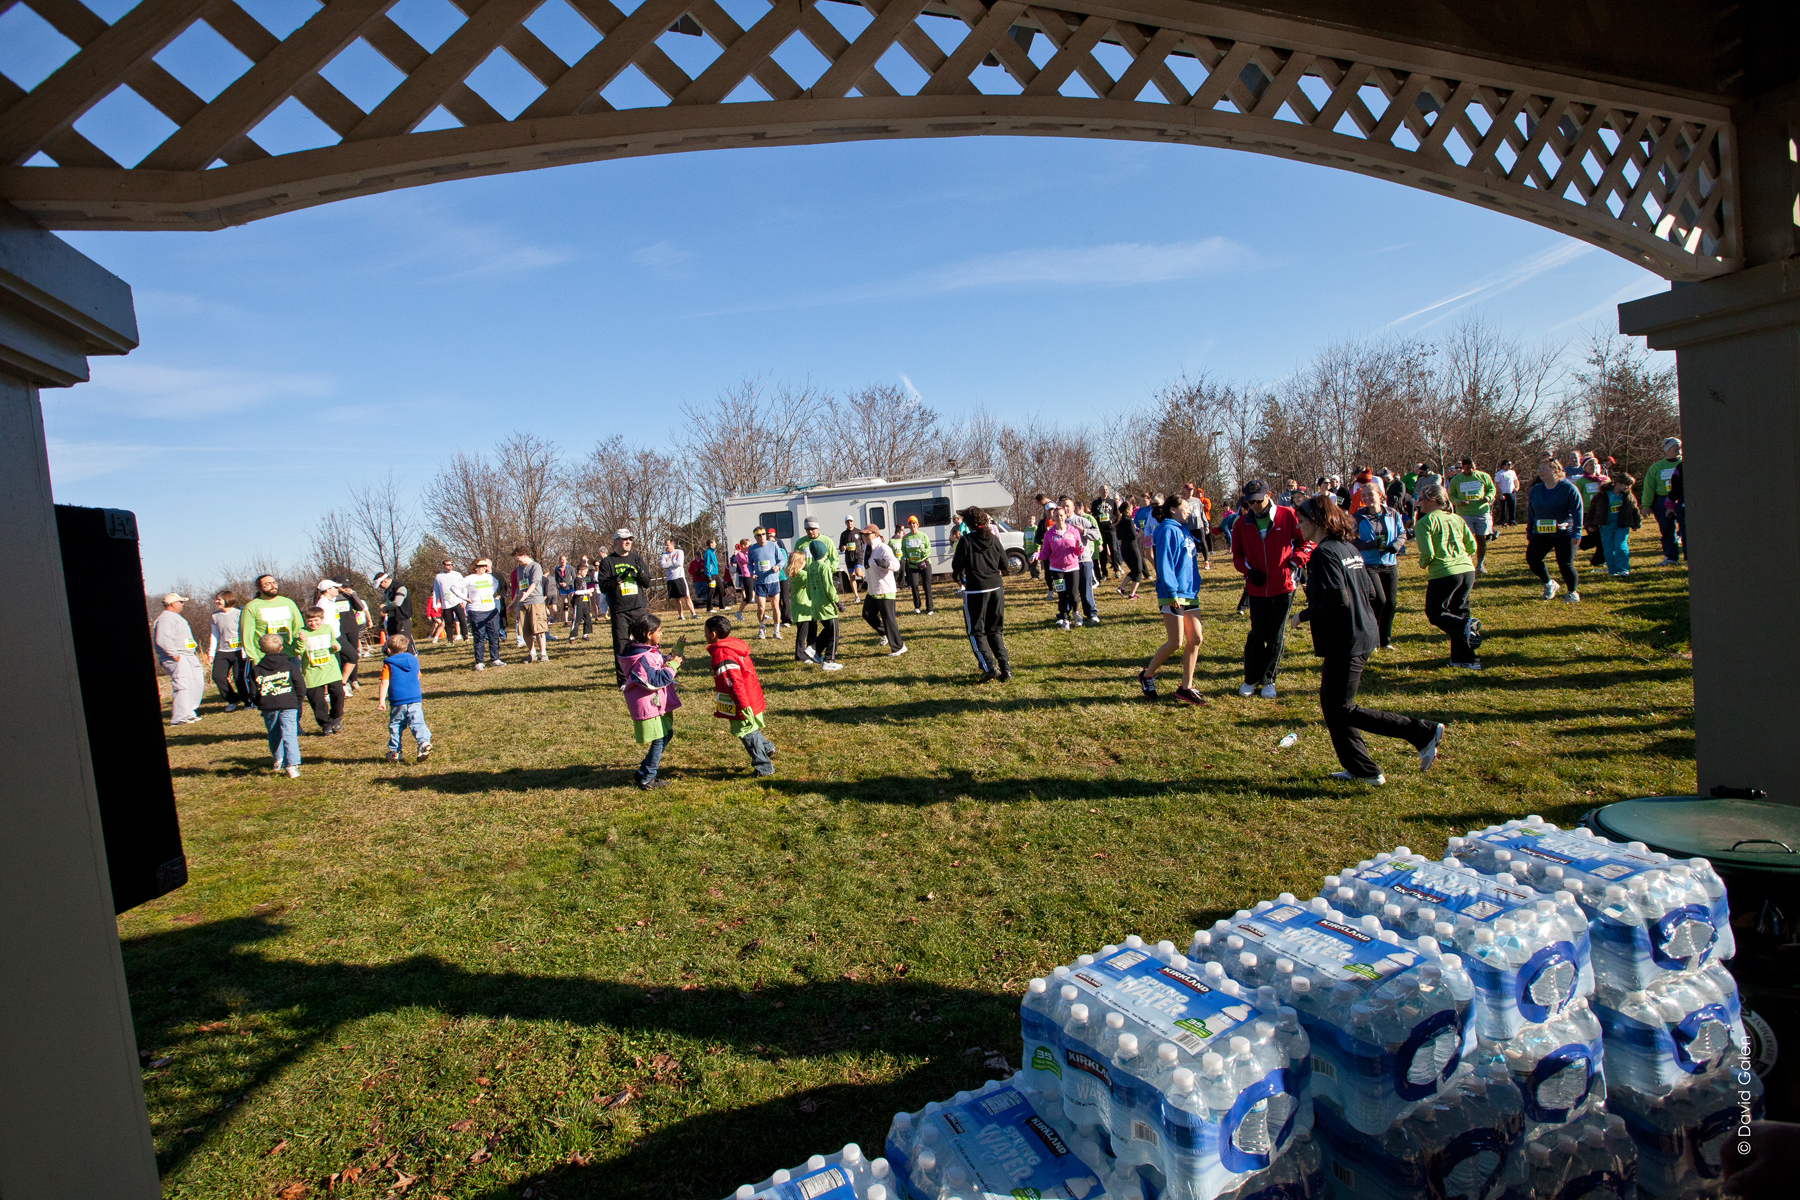 2012 Resolution Race The Loudoun County Volunteer Rescue Squad